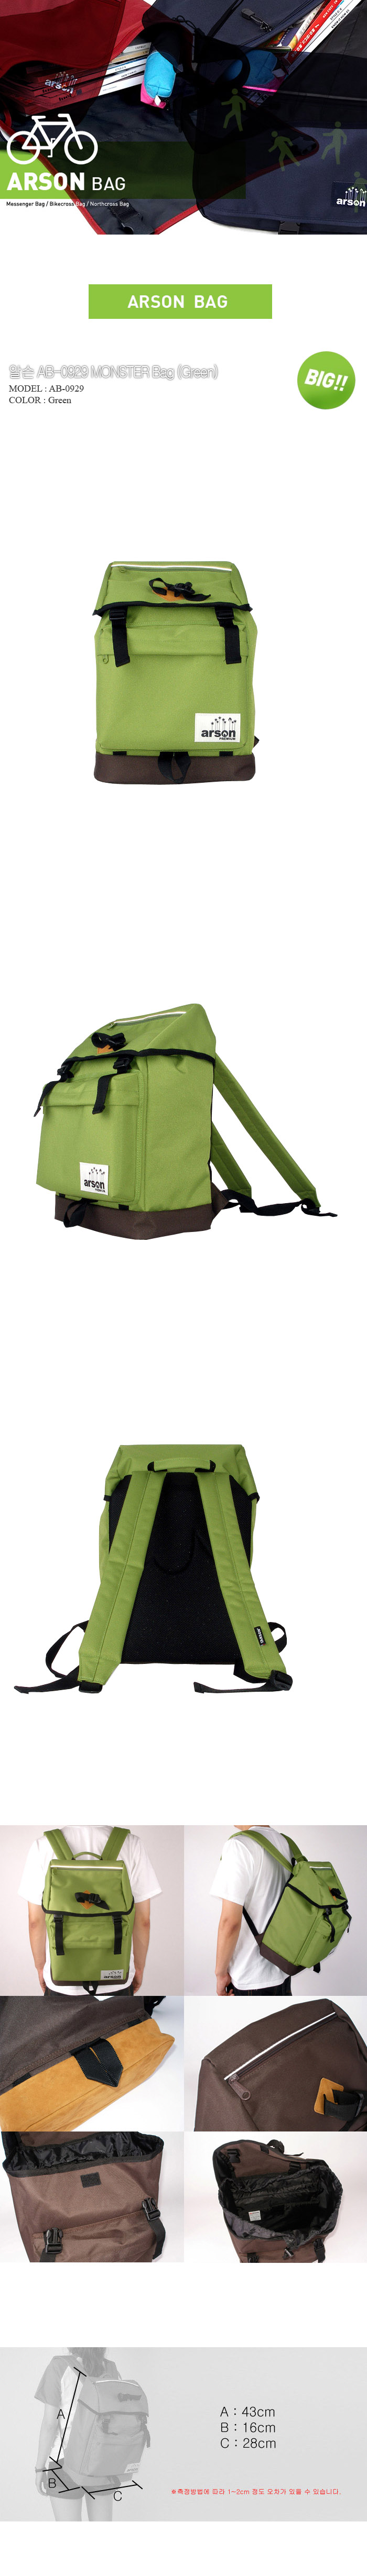 [ ARSON ] AB-0929 (Green)/Backpack School Bag